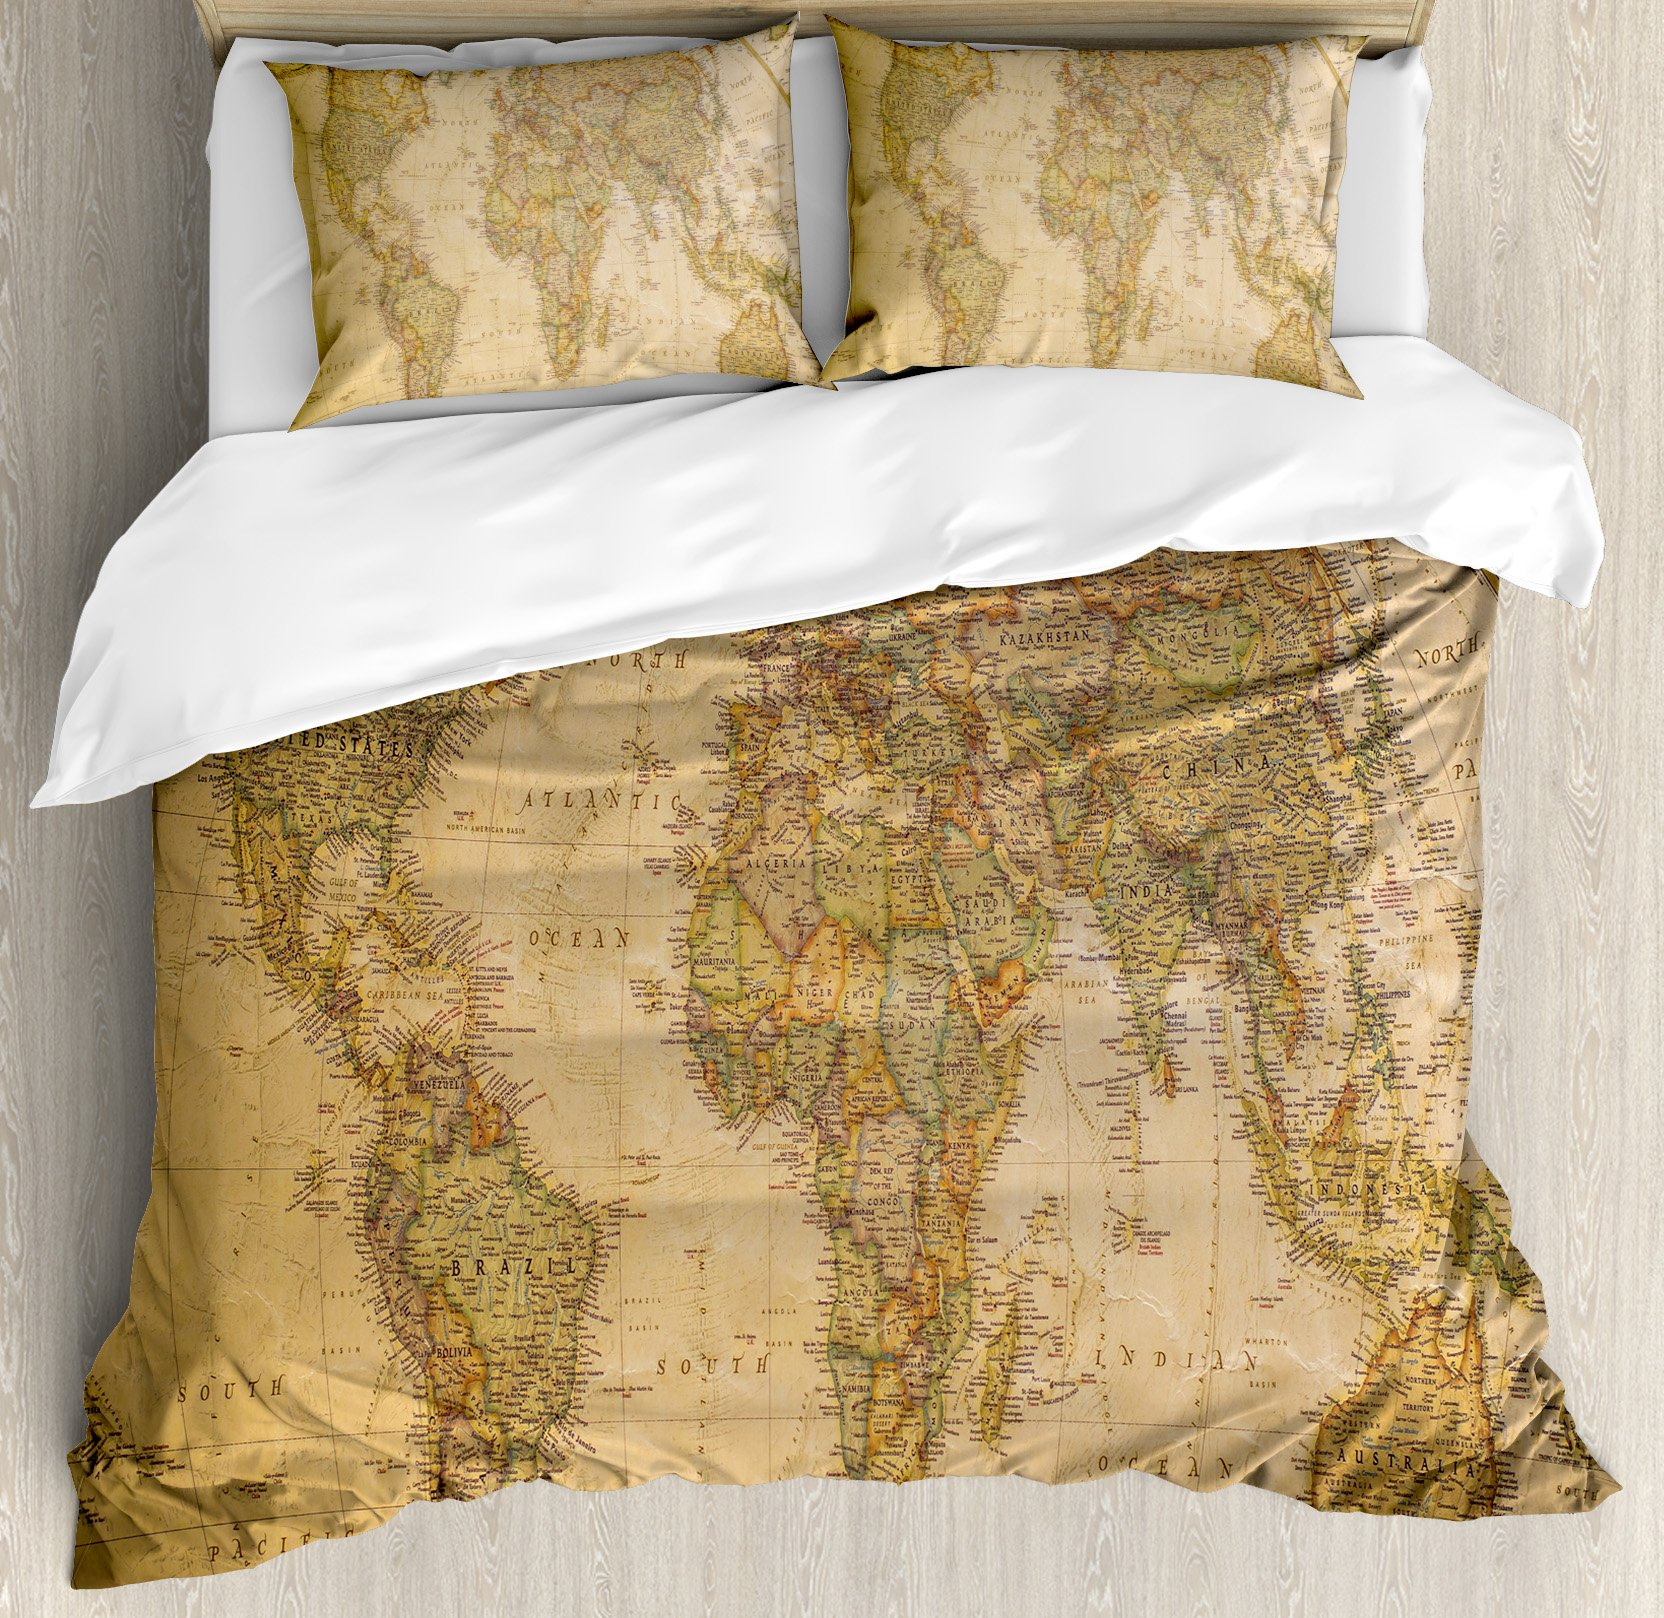 World Map Duvet Cover Set King Size by Ambesonne, Anthique Old World Map in Retro Colors Vintage Nostalgic Design Art Print, Decorative 3 Piece Bedding Set with 2 Pillow Shams, Cream Pale Coffee